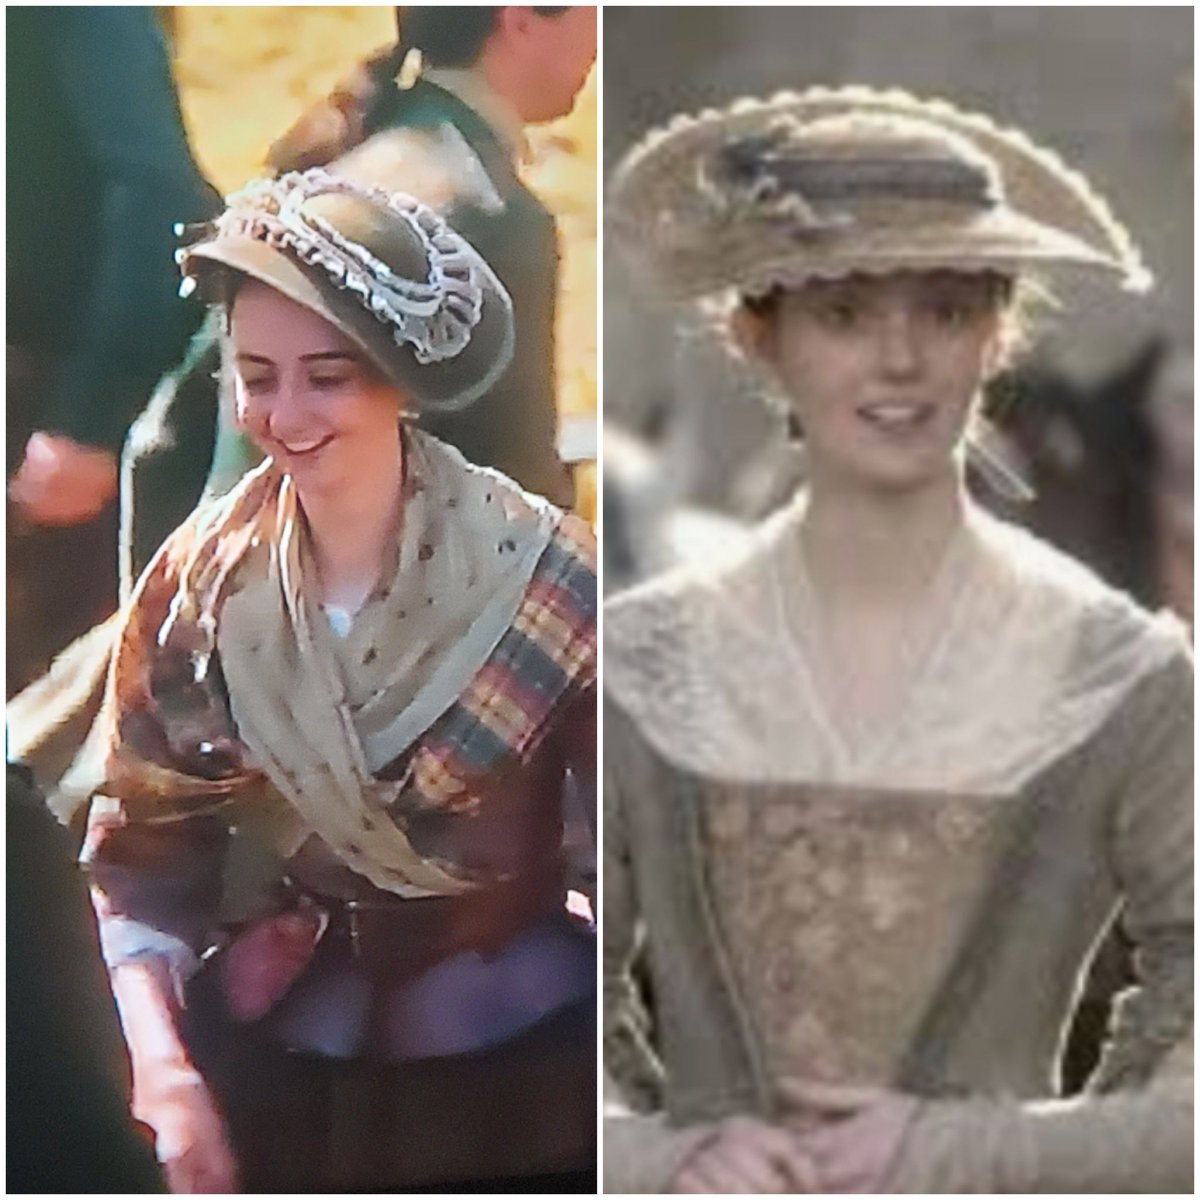 Was you late wife Isobel used as an extra on Outlander  5:1, the wediibg/dancing scene? If not I believe she has a twin ..#LordJohnGrey